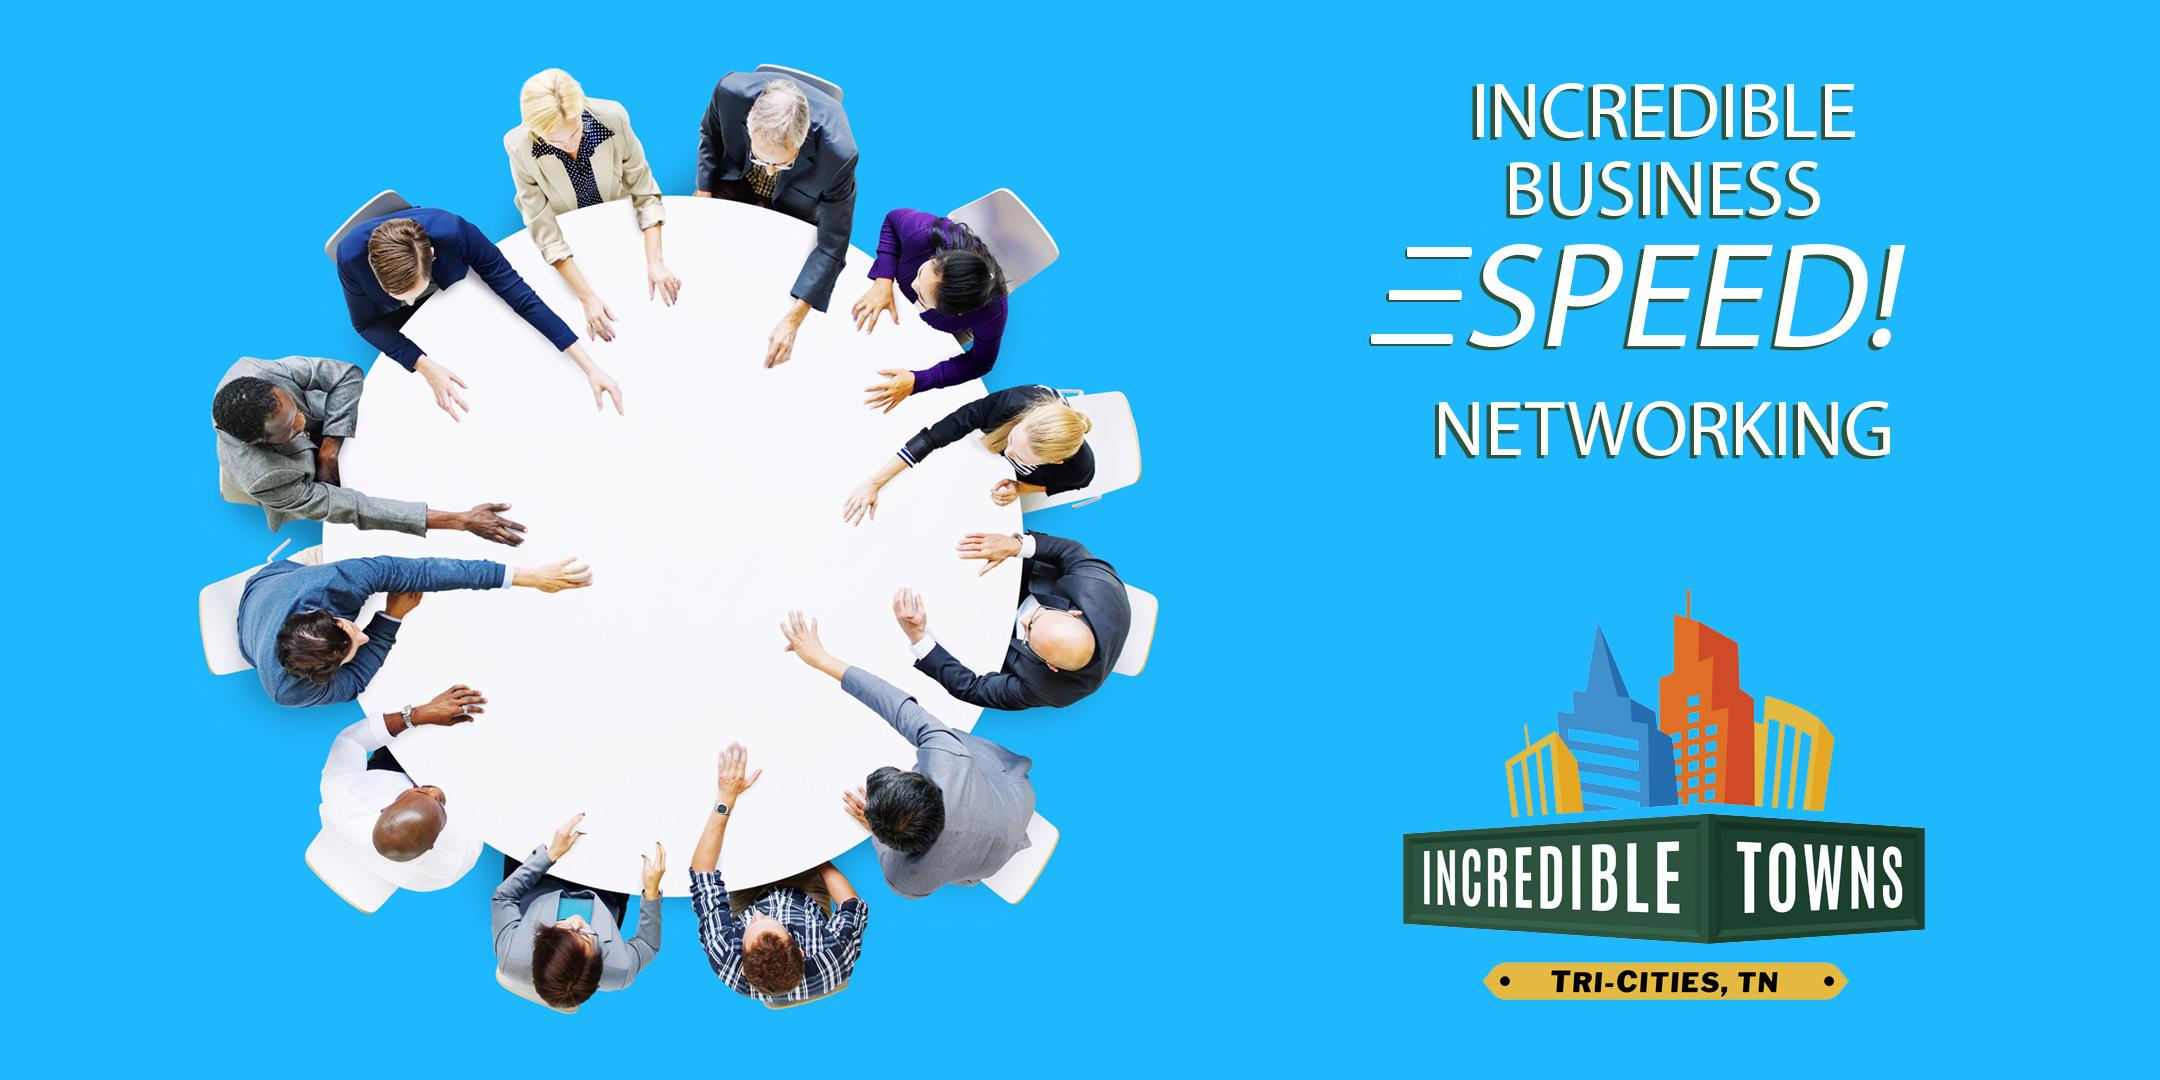 Incredible Business SPEED! Networking - Johnson City - July 31 2020 1